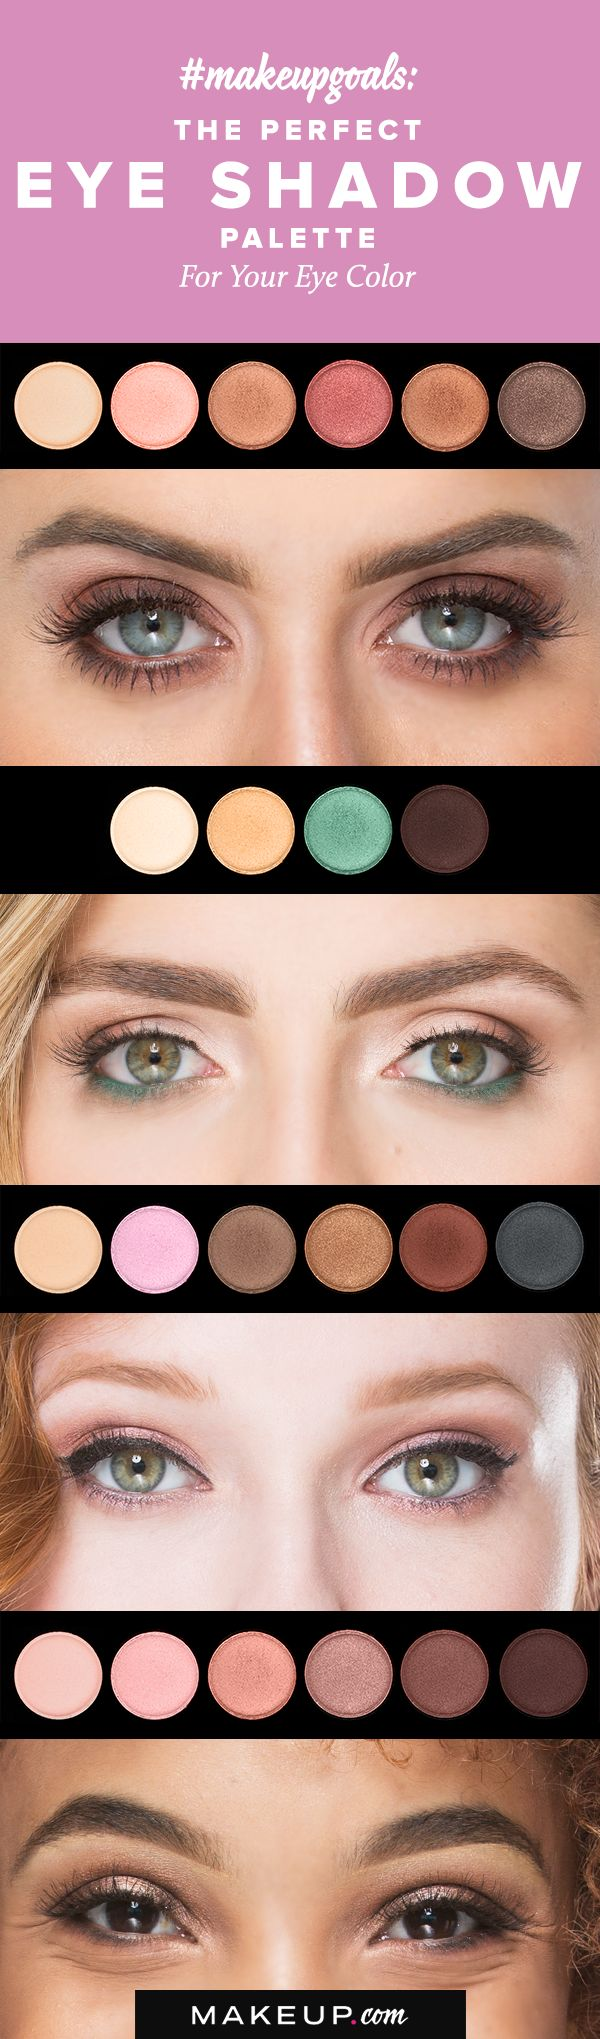 655 Best On My Face Images On Pinterest Beauty Makeup Eyeshadow